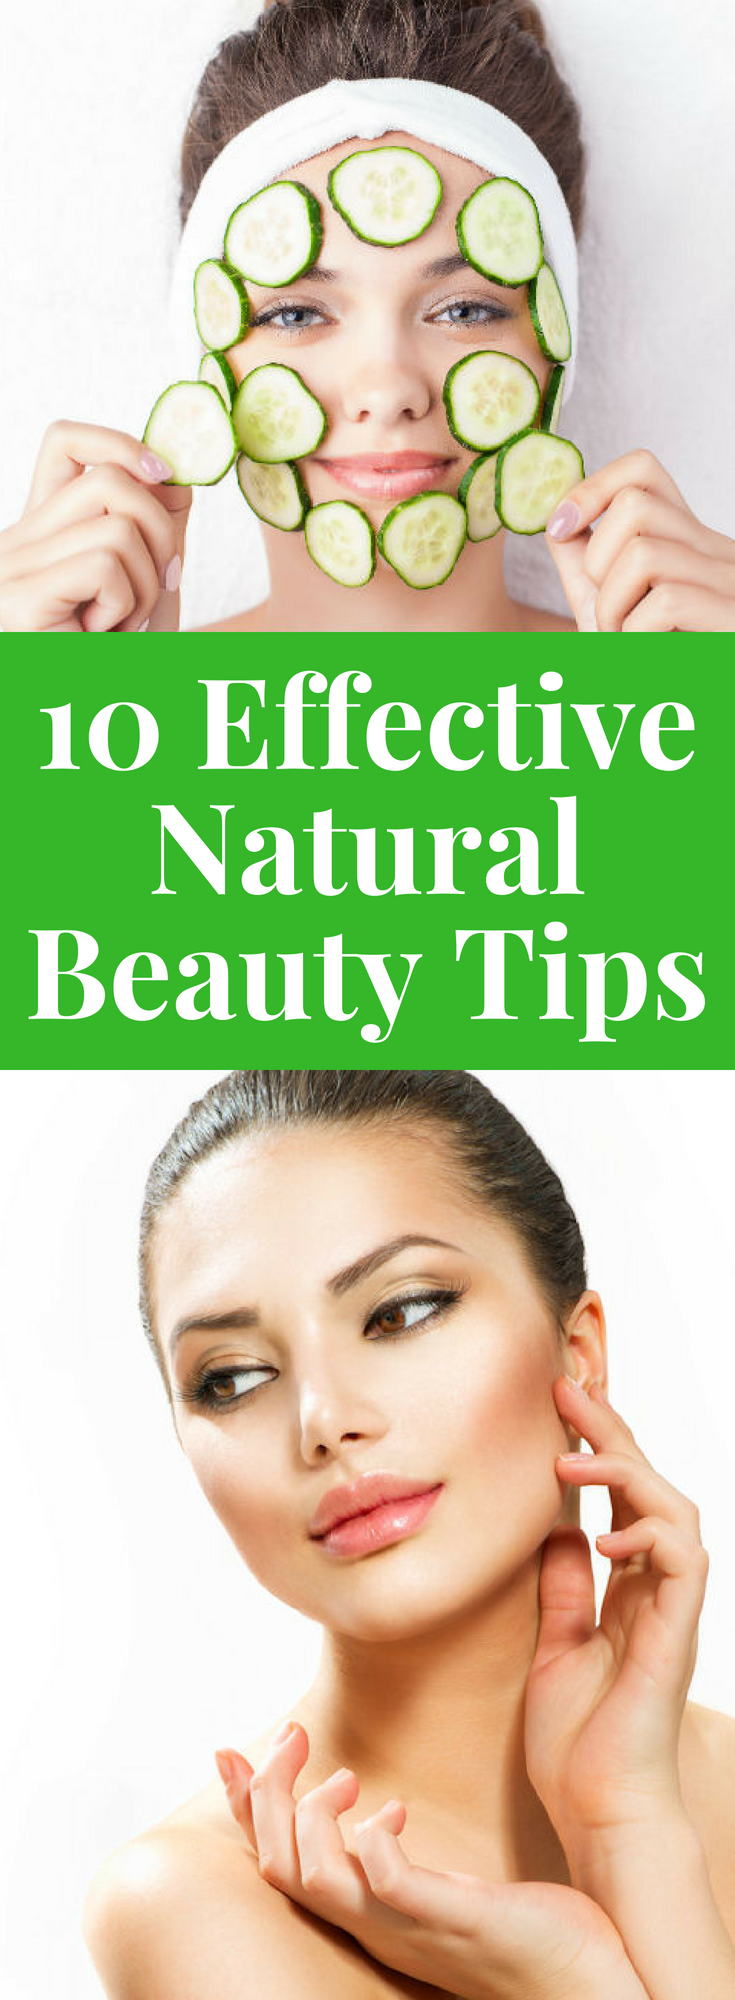 Top 10 Effective Natural Beauty Tips From Kitchen